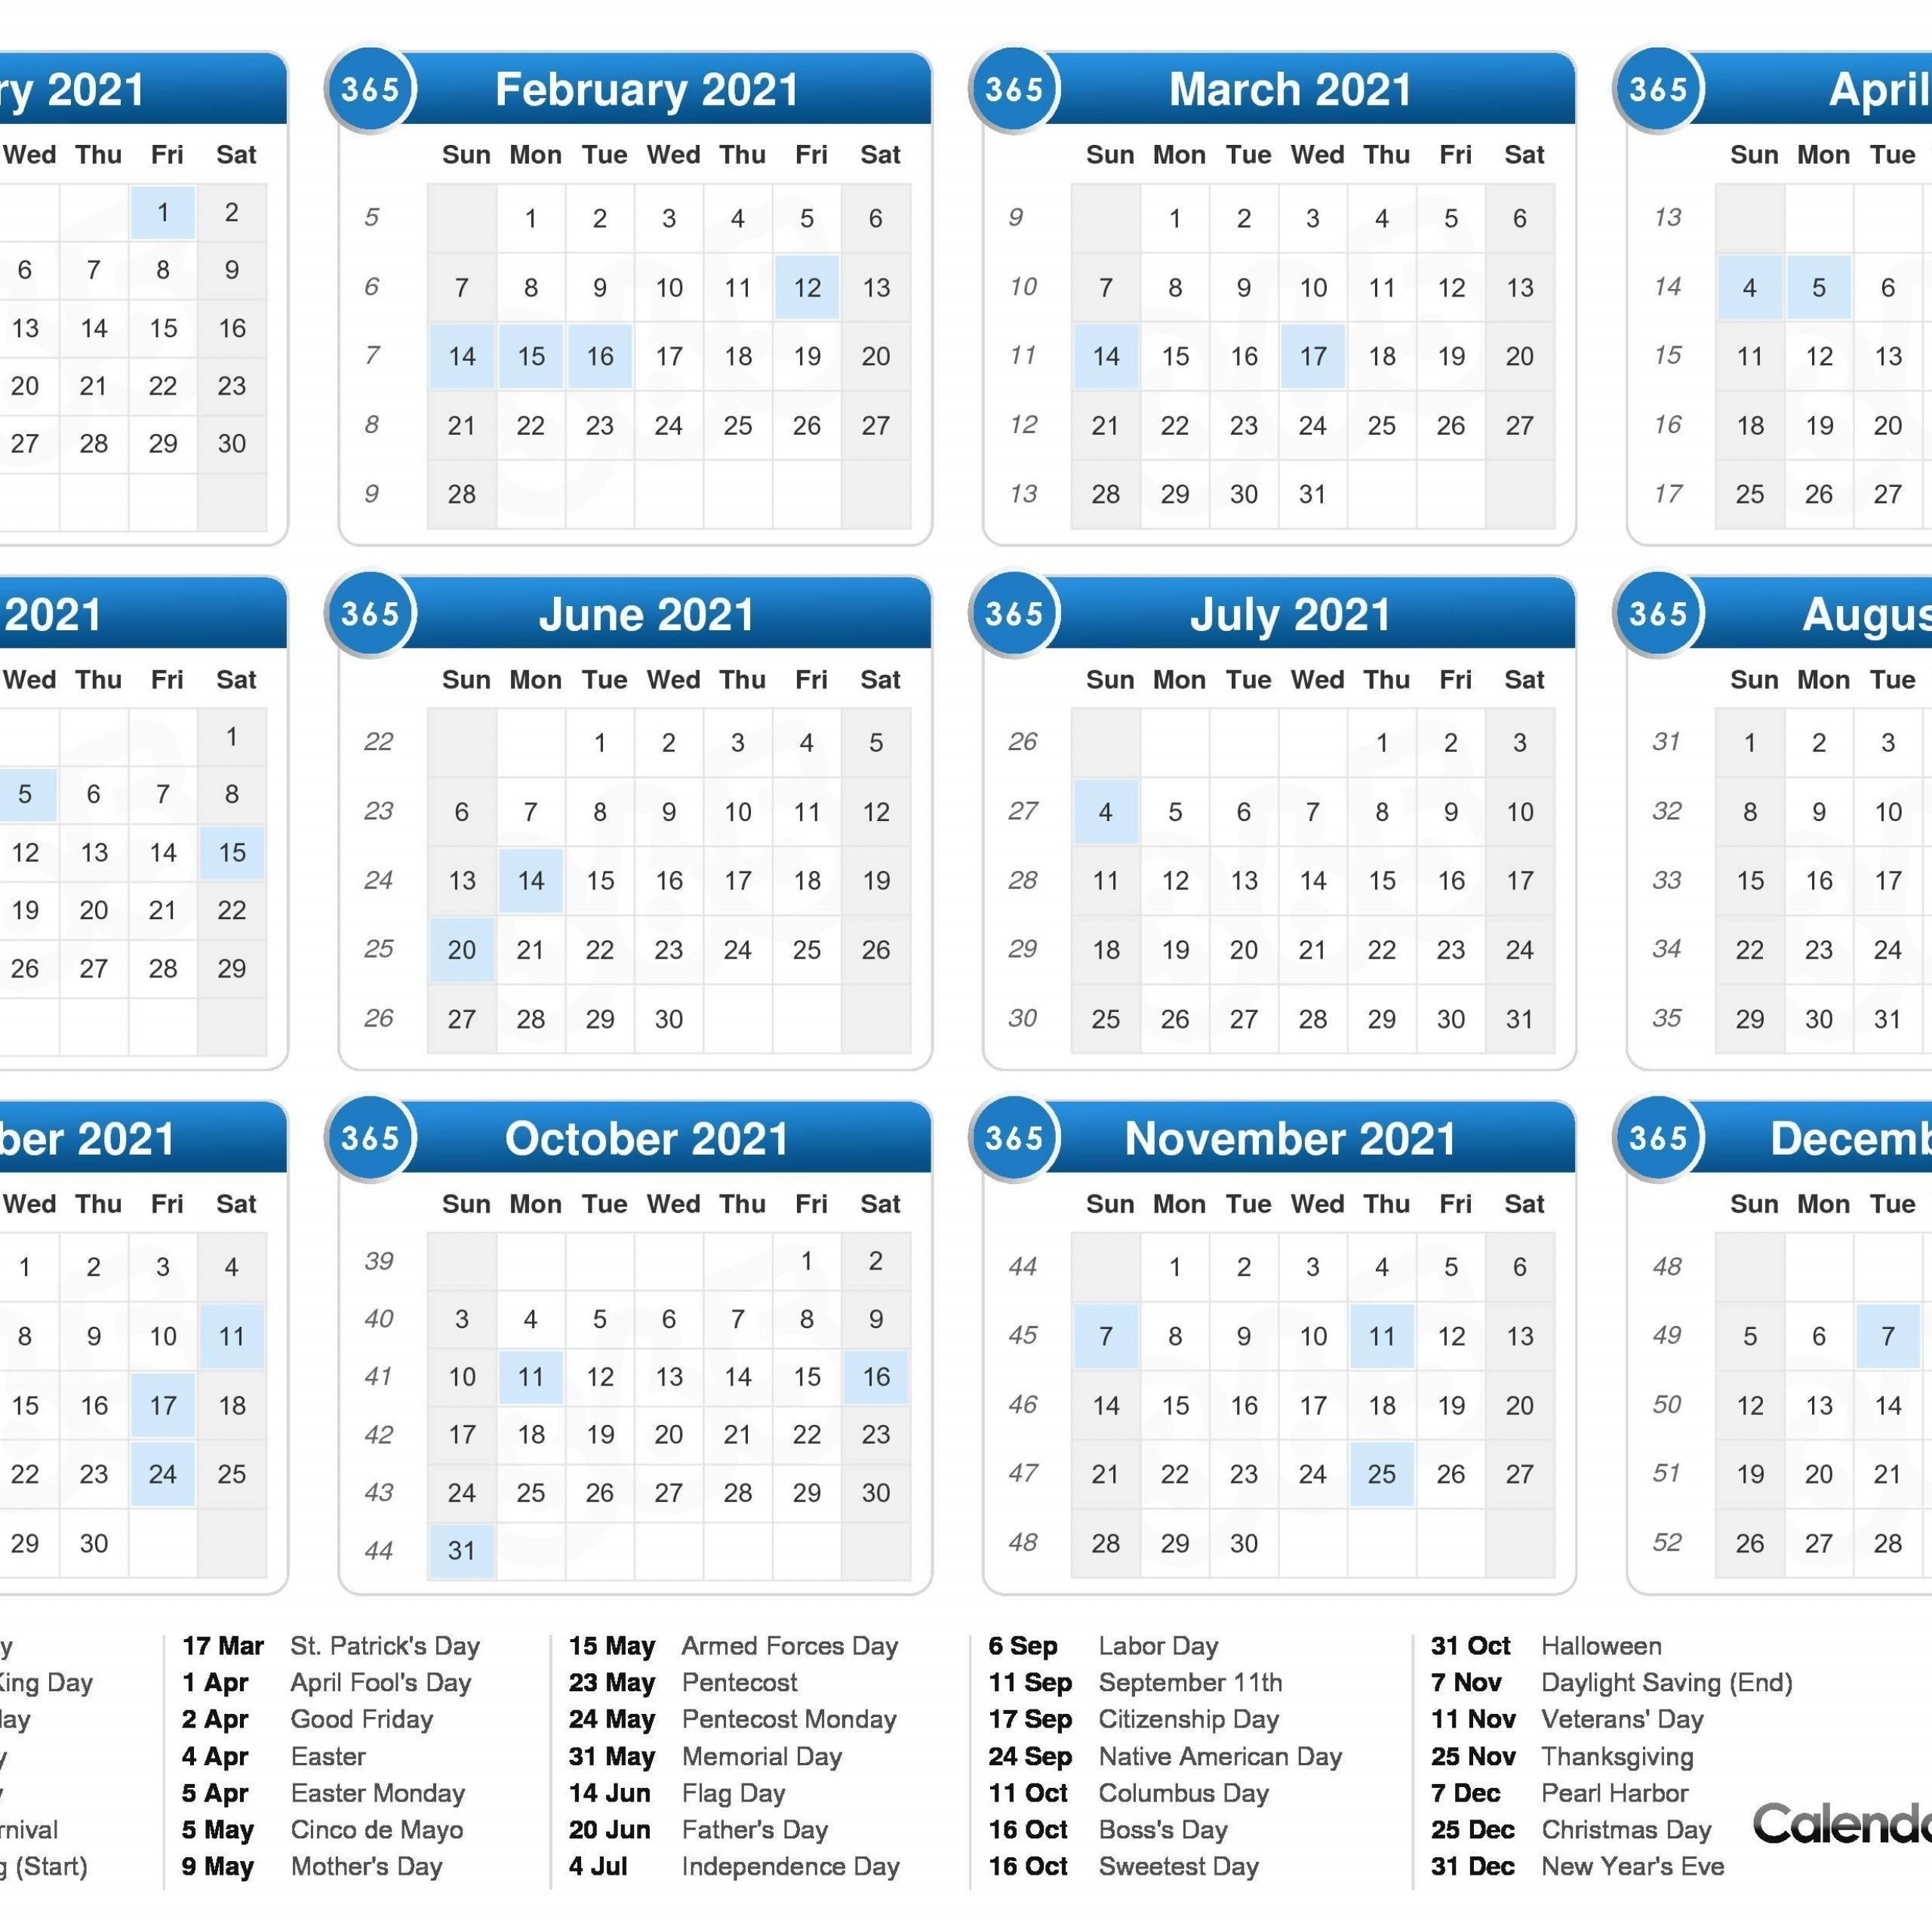 2021 One Page Calendar With Week Numbers | Free Printable Calendar regarding Julian Calendar 2021 Free Printable Photo